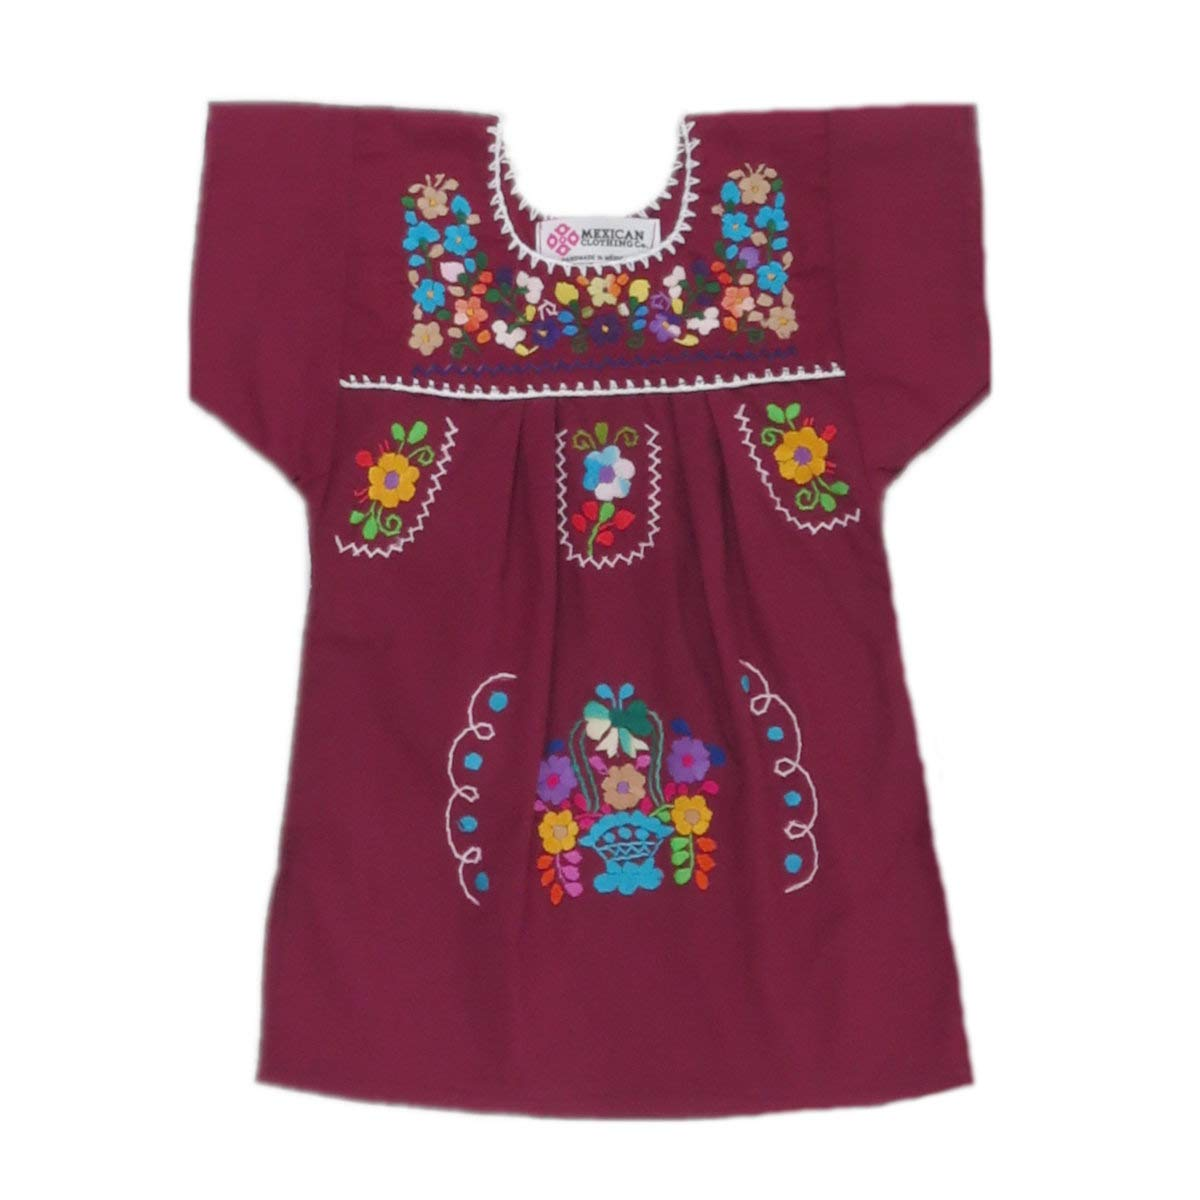 d989d9c9341 Amazon.com  Mexican Clothing Co Baby Girls Mexican Dress Traditional  Tehuacan Poplin CT  Clothing